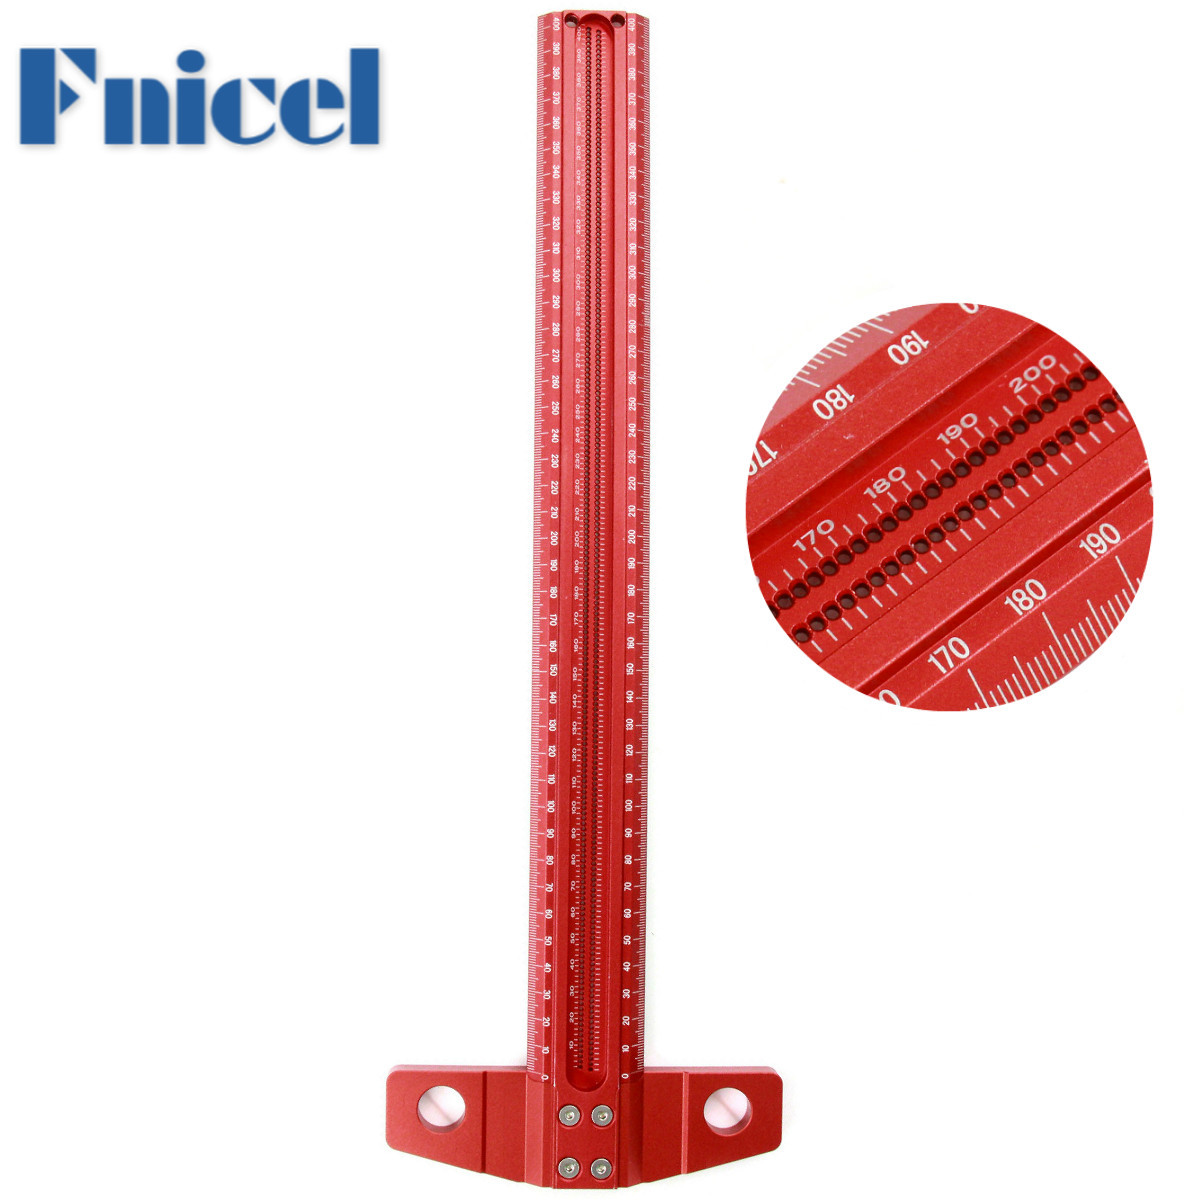 Precision Marking T-Ruler Aluminum Alloy Woodworking Scribe Marking Gauge Deluxe Crossed-out Hole Scribing Ruler Measuring Tools